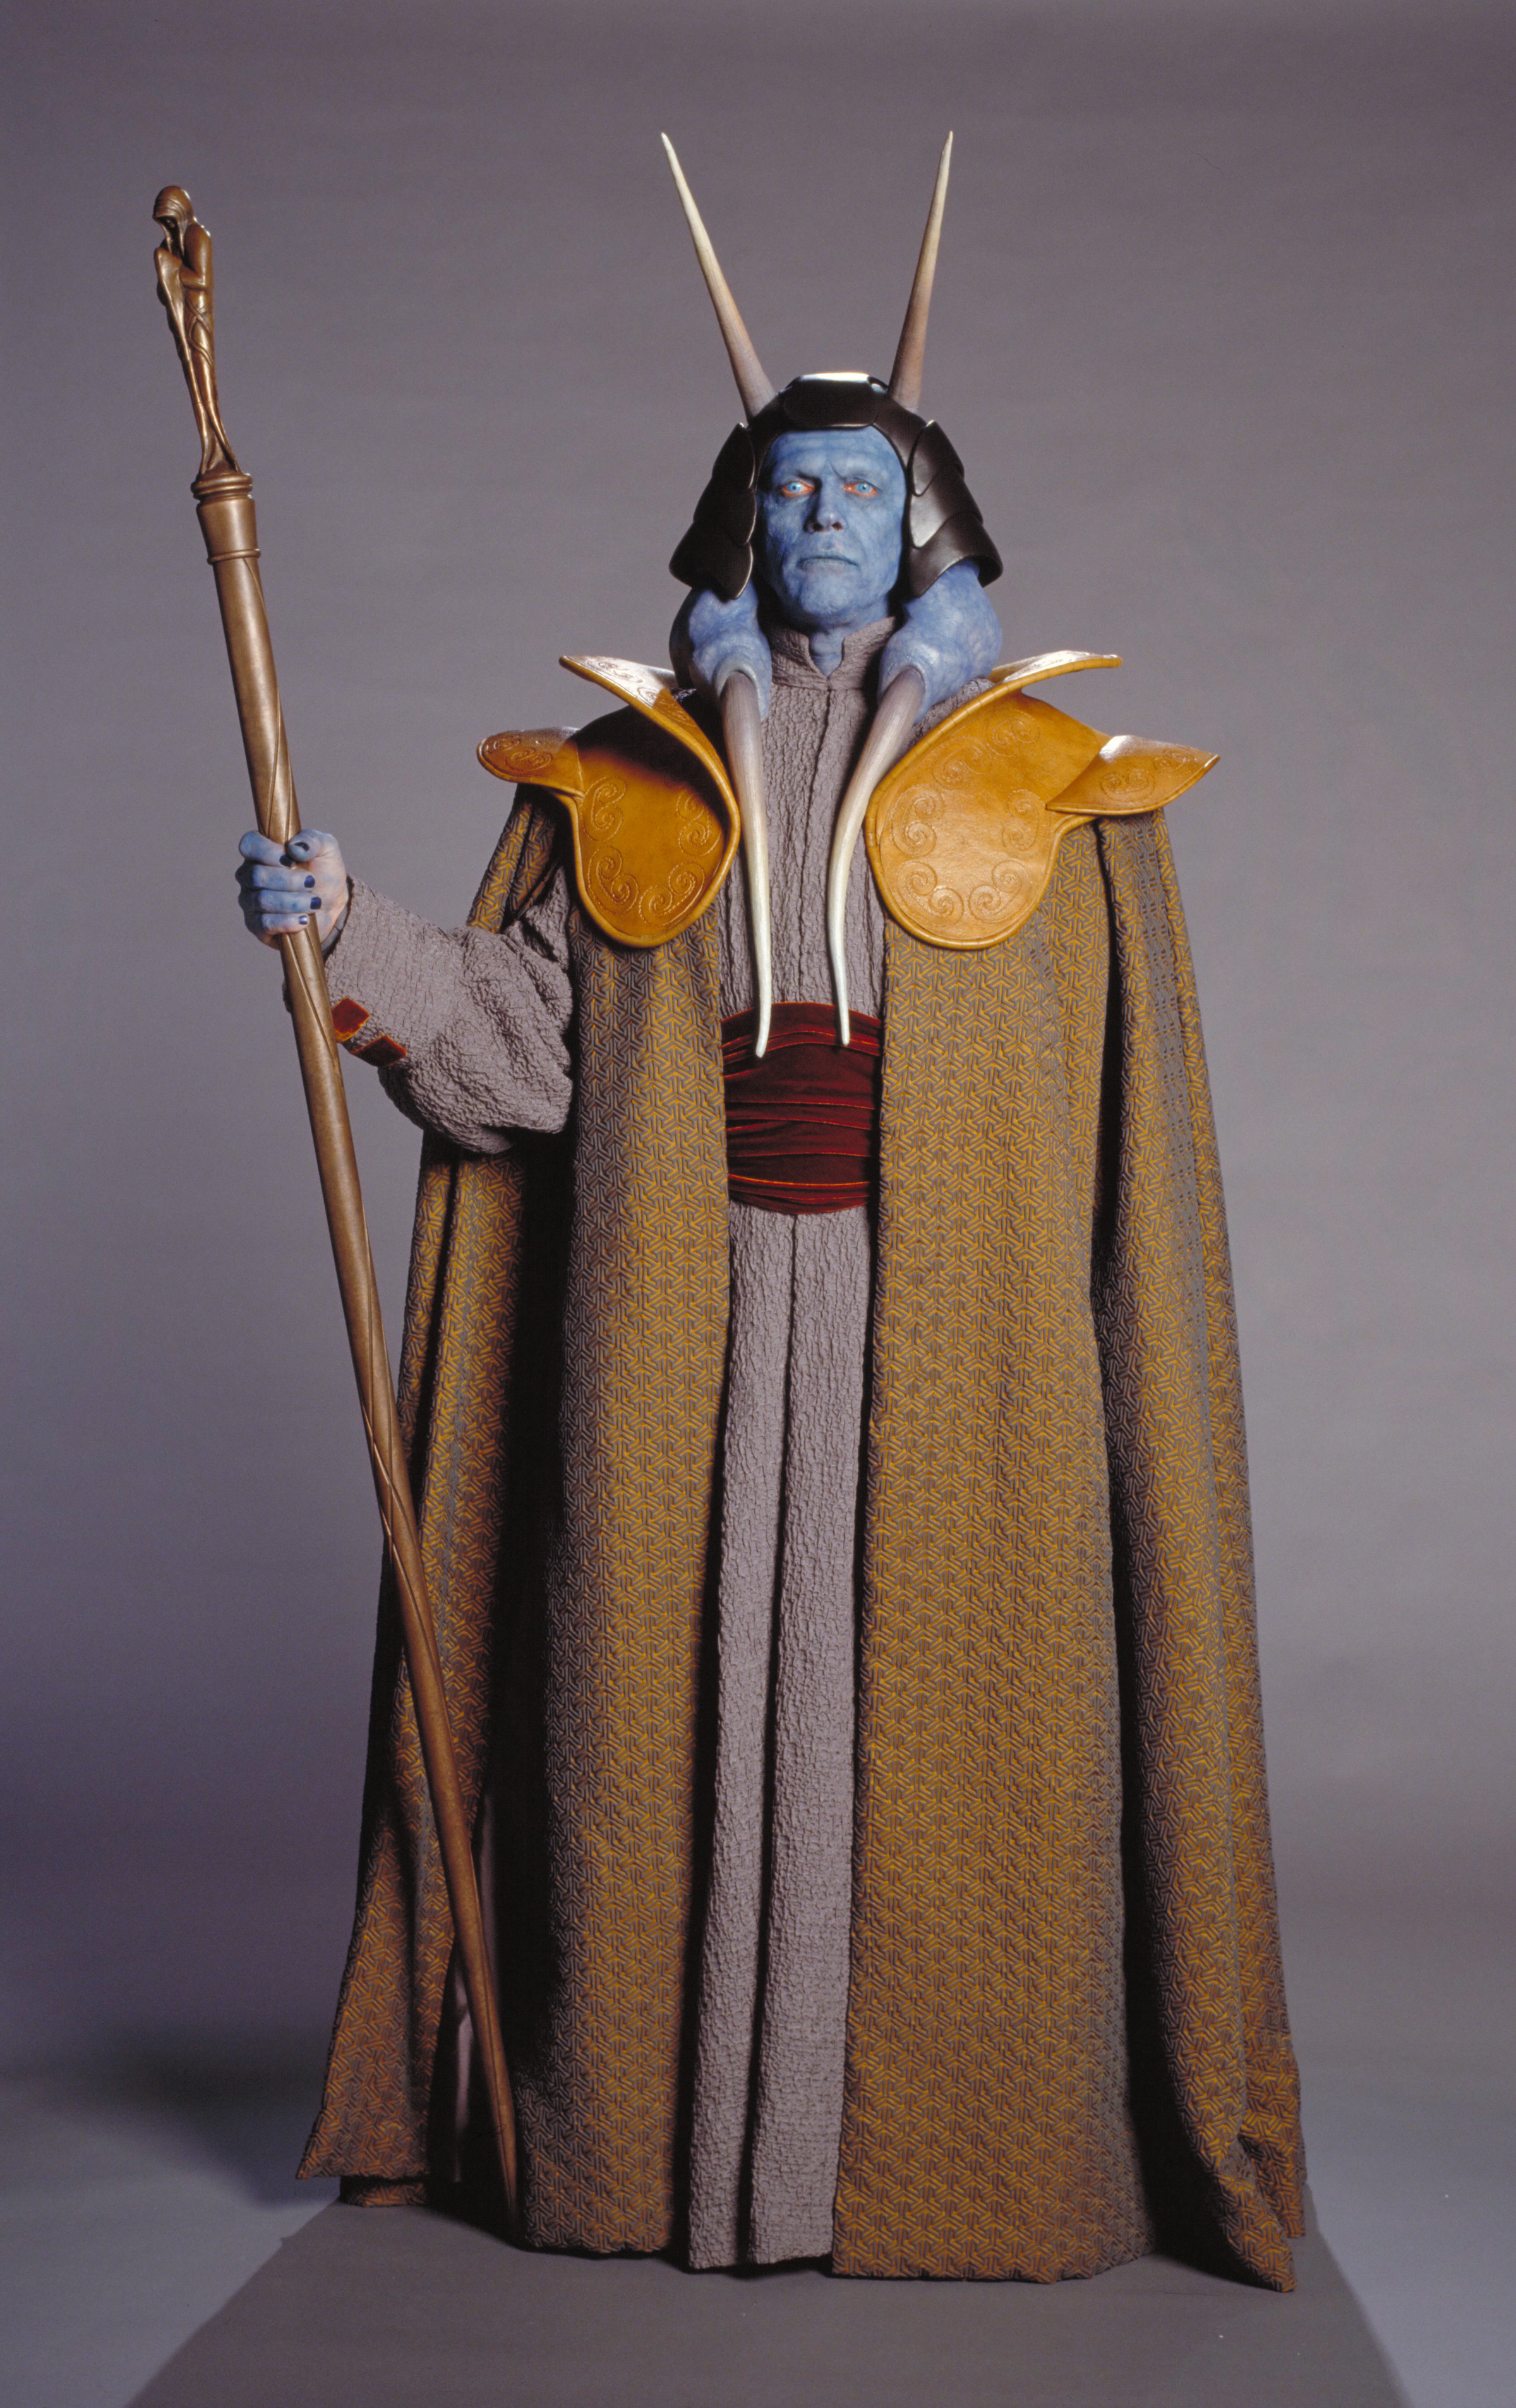 Star Wars And The Power Of Costume Detroit Institute Of Arts Museum